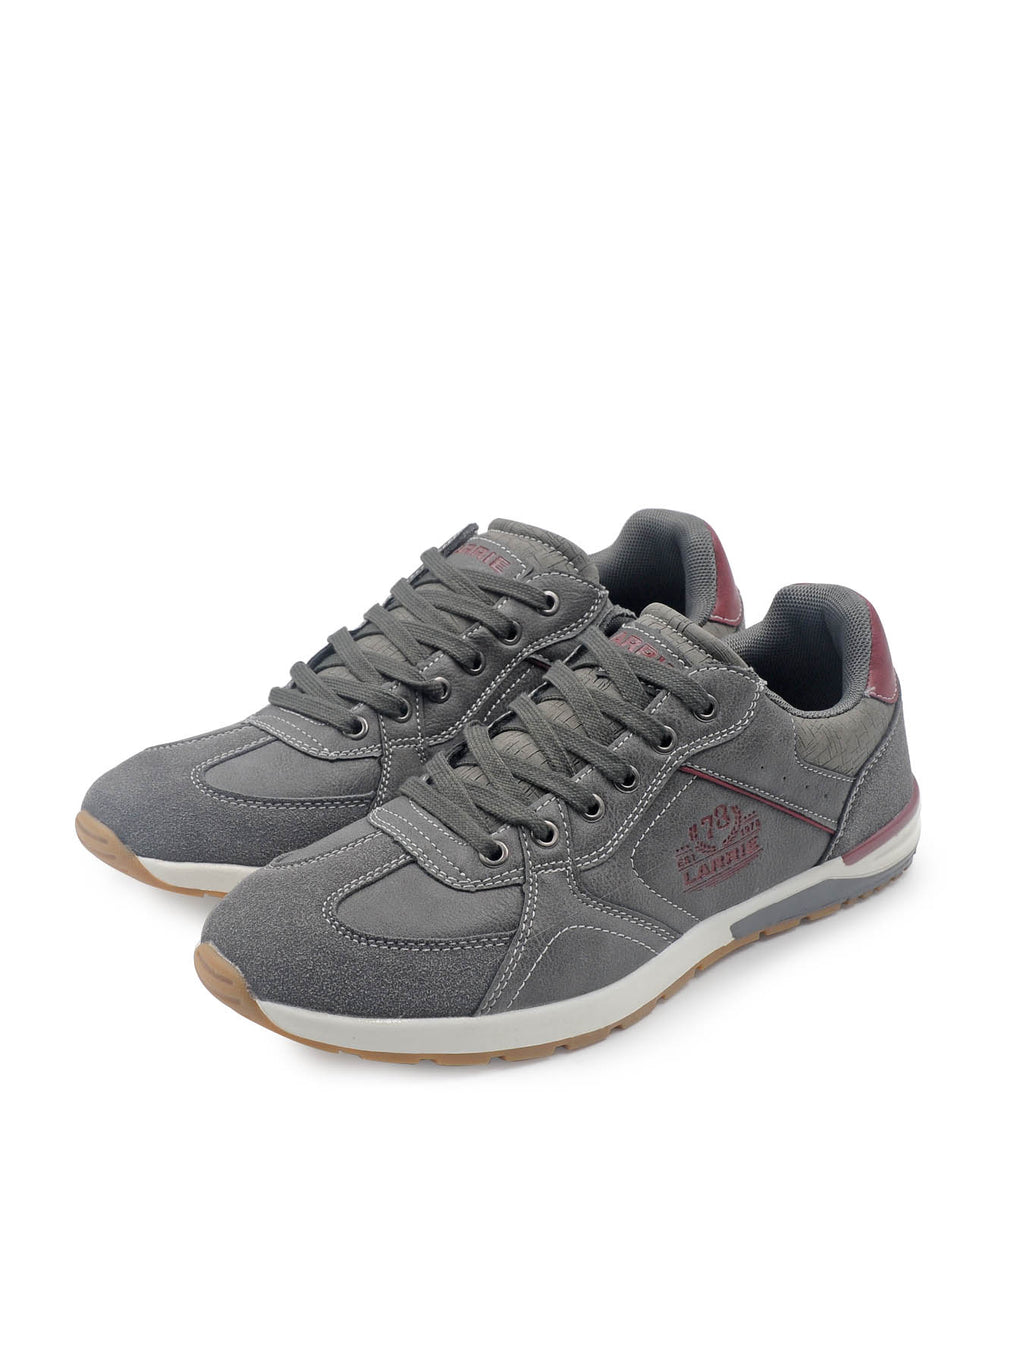 Larrie Grey Stitched Detail Sneakers